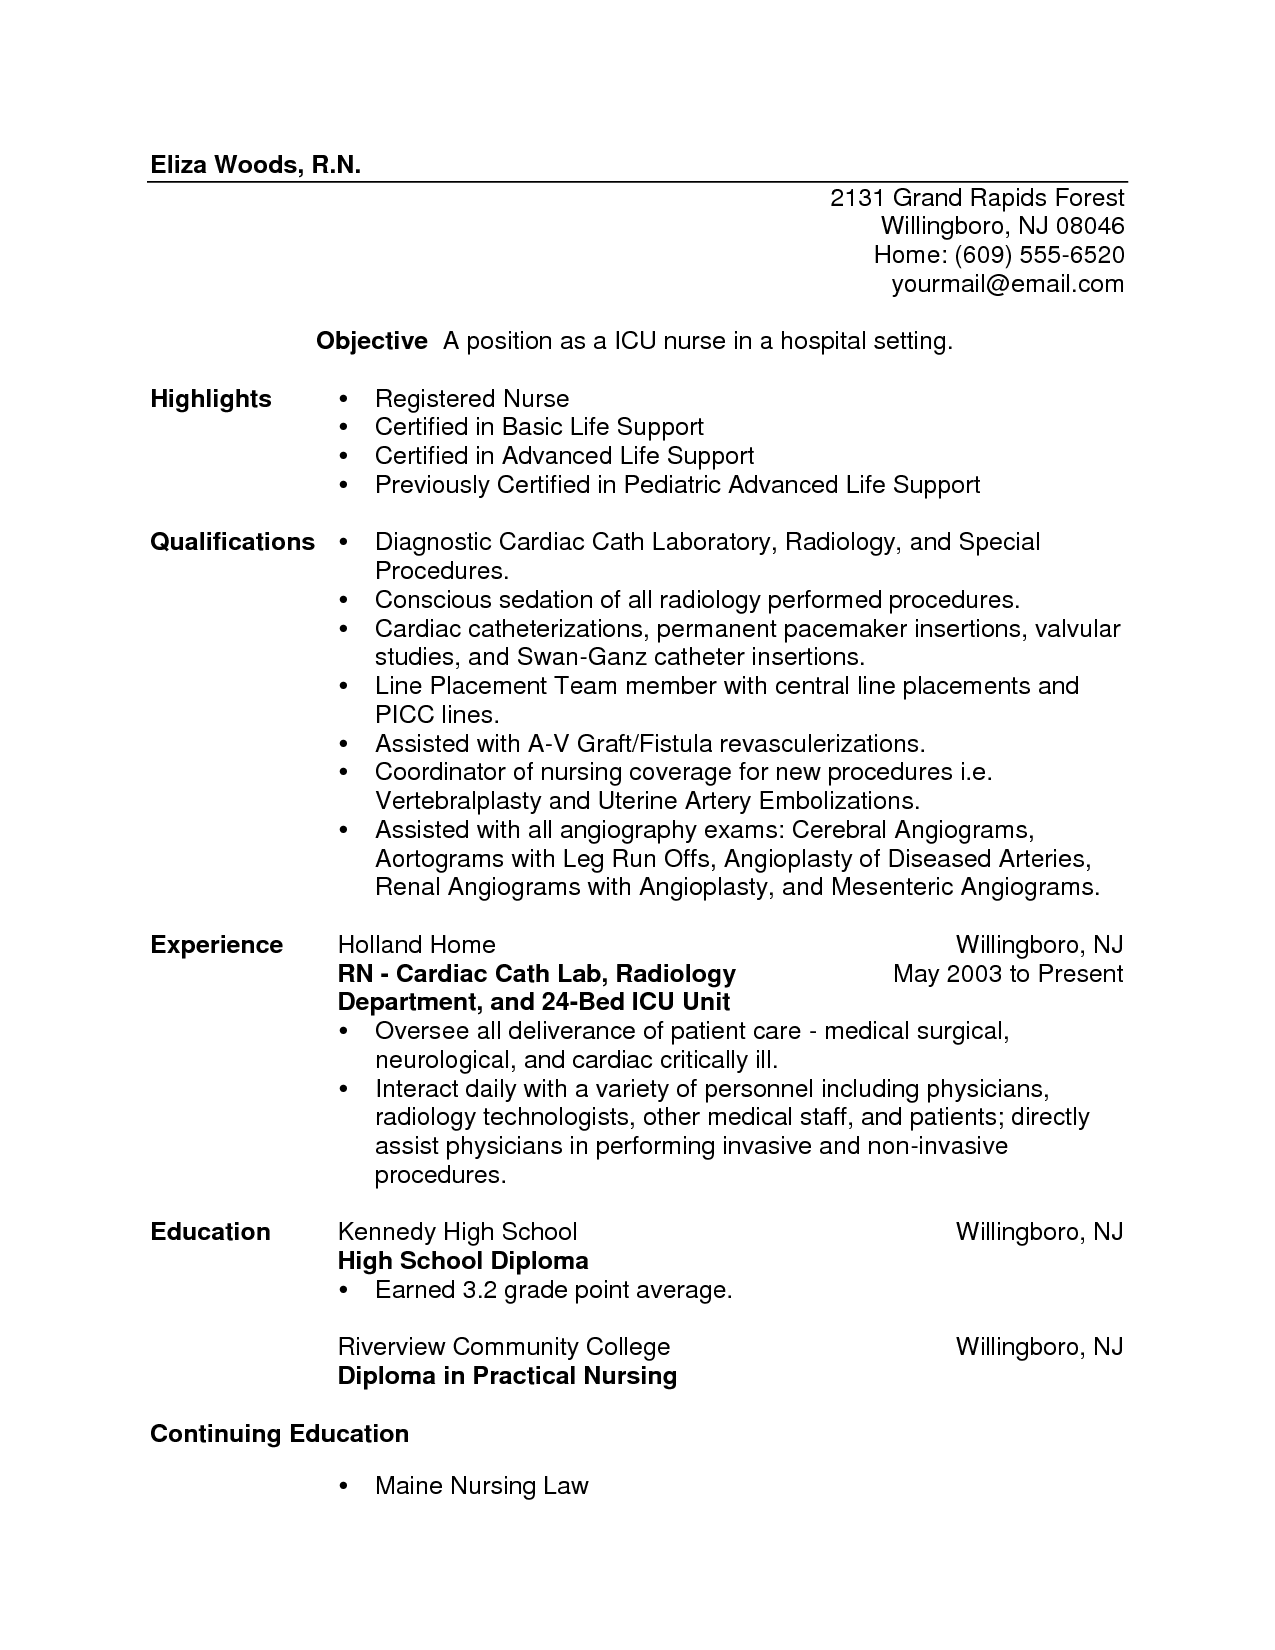 Resume For Registered Nurse Nurse Resumes  Nurse Resume Sample New Grad Nursing Resume .